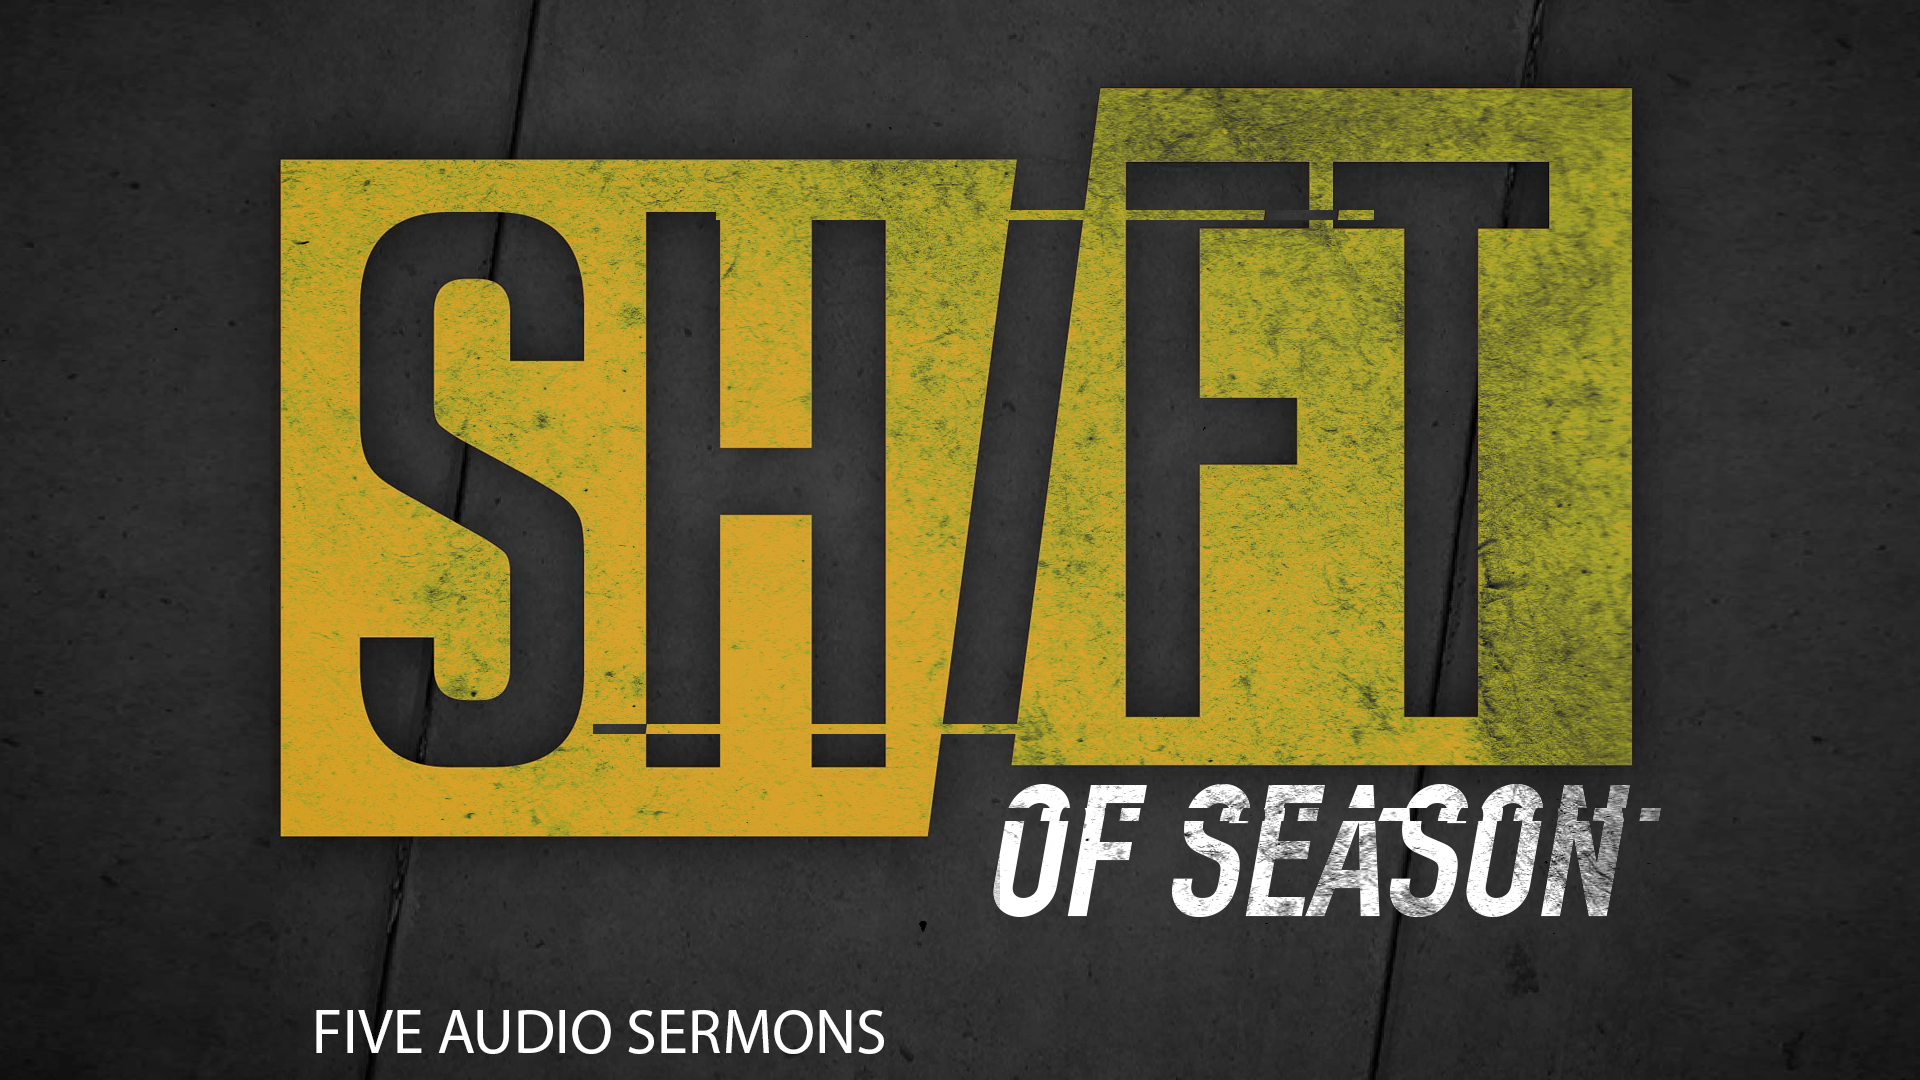 https://vladimirsavchuk.com/resources/shift-of-season-audio-series/